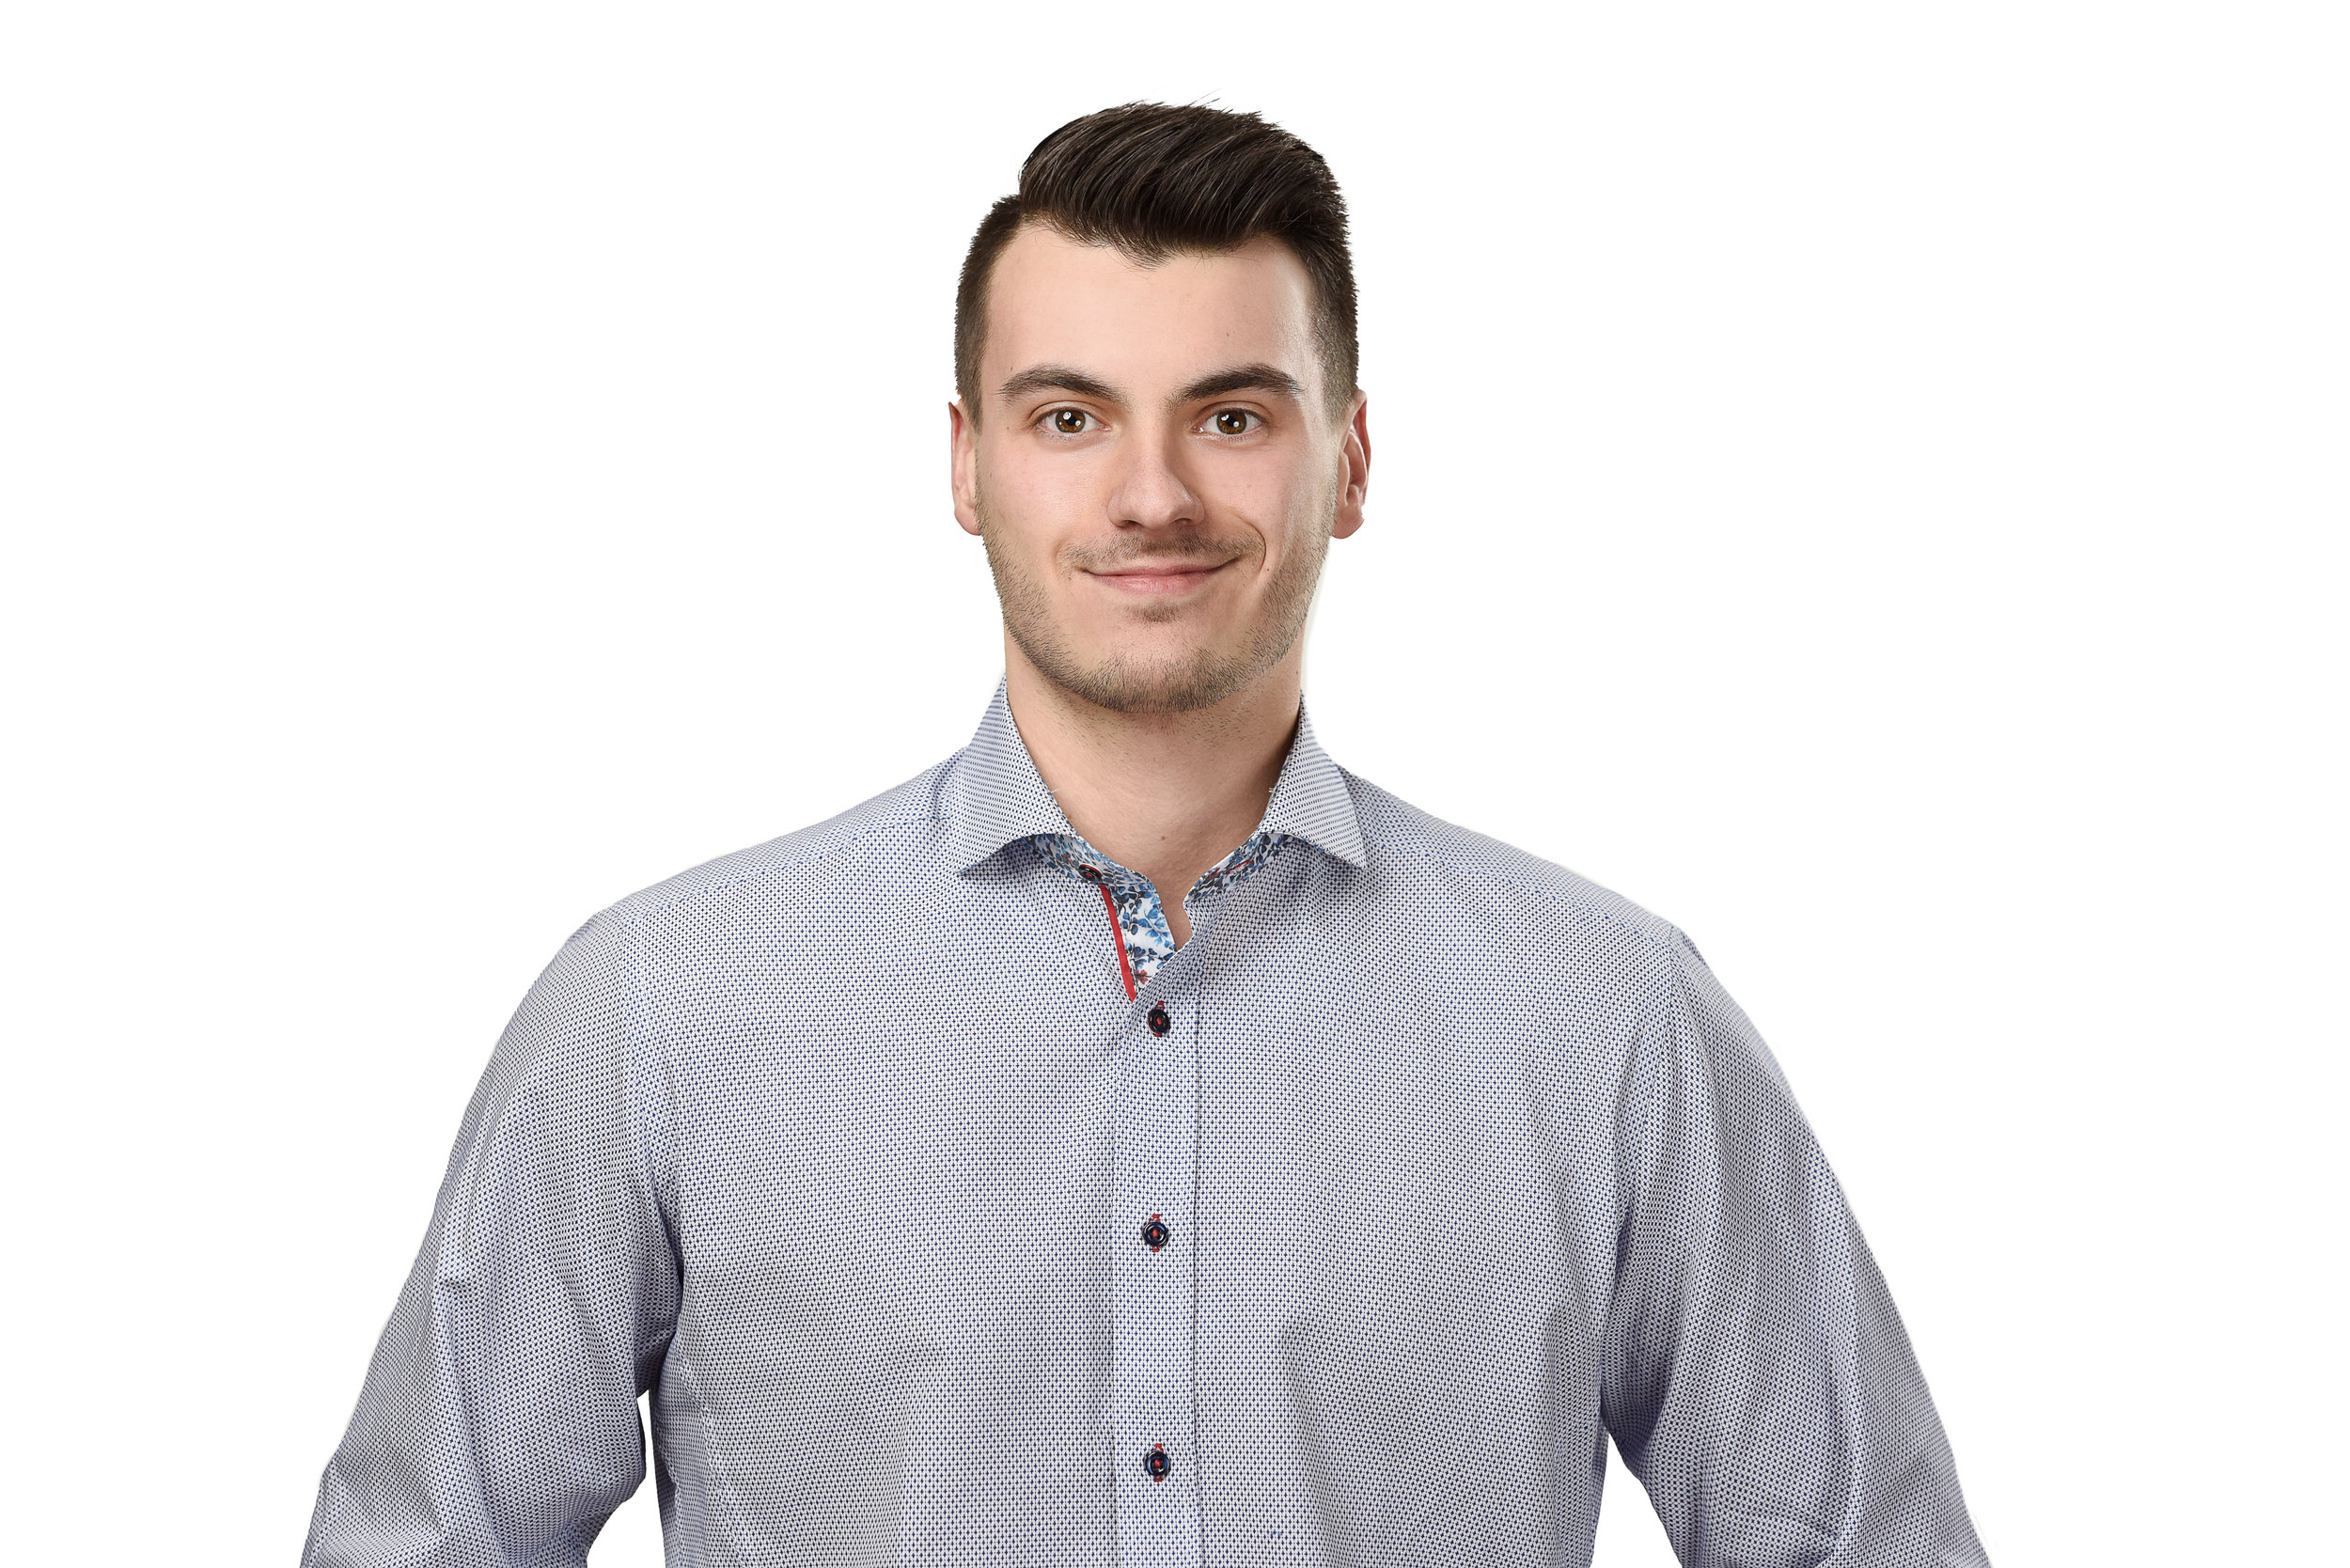 René Gaudet | Distributor Sales New Brunswick and Prince Edward Island   René graduated from CCNB with a diploma in Marketing in 2017, and is fluent in English and French. New to the Electrical Industry, René is highly motivated, eager to learn, and has great customer service skills, making him a key asset to our team.